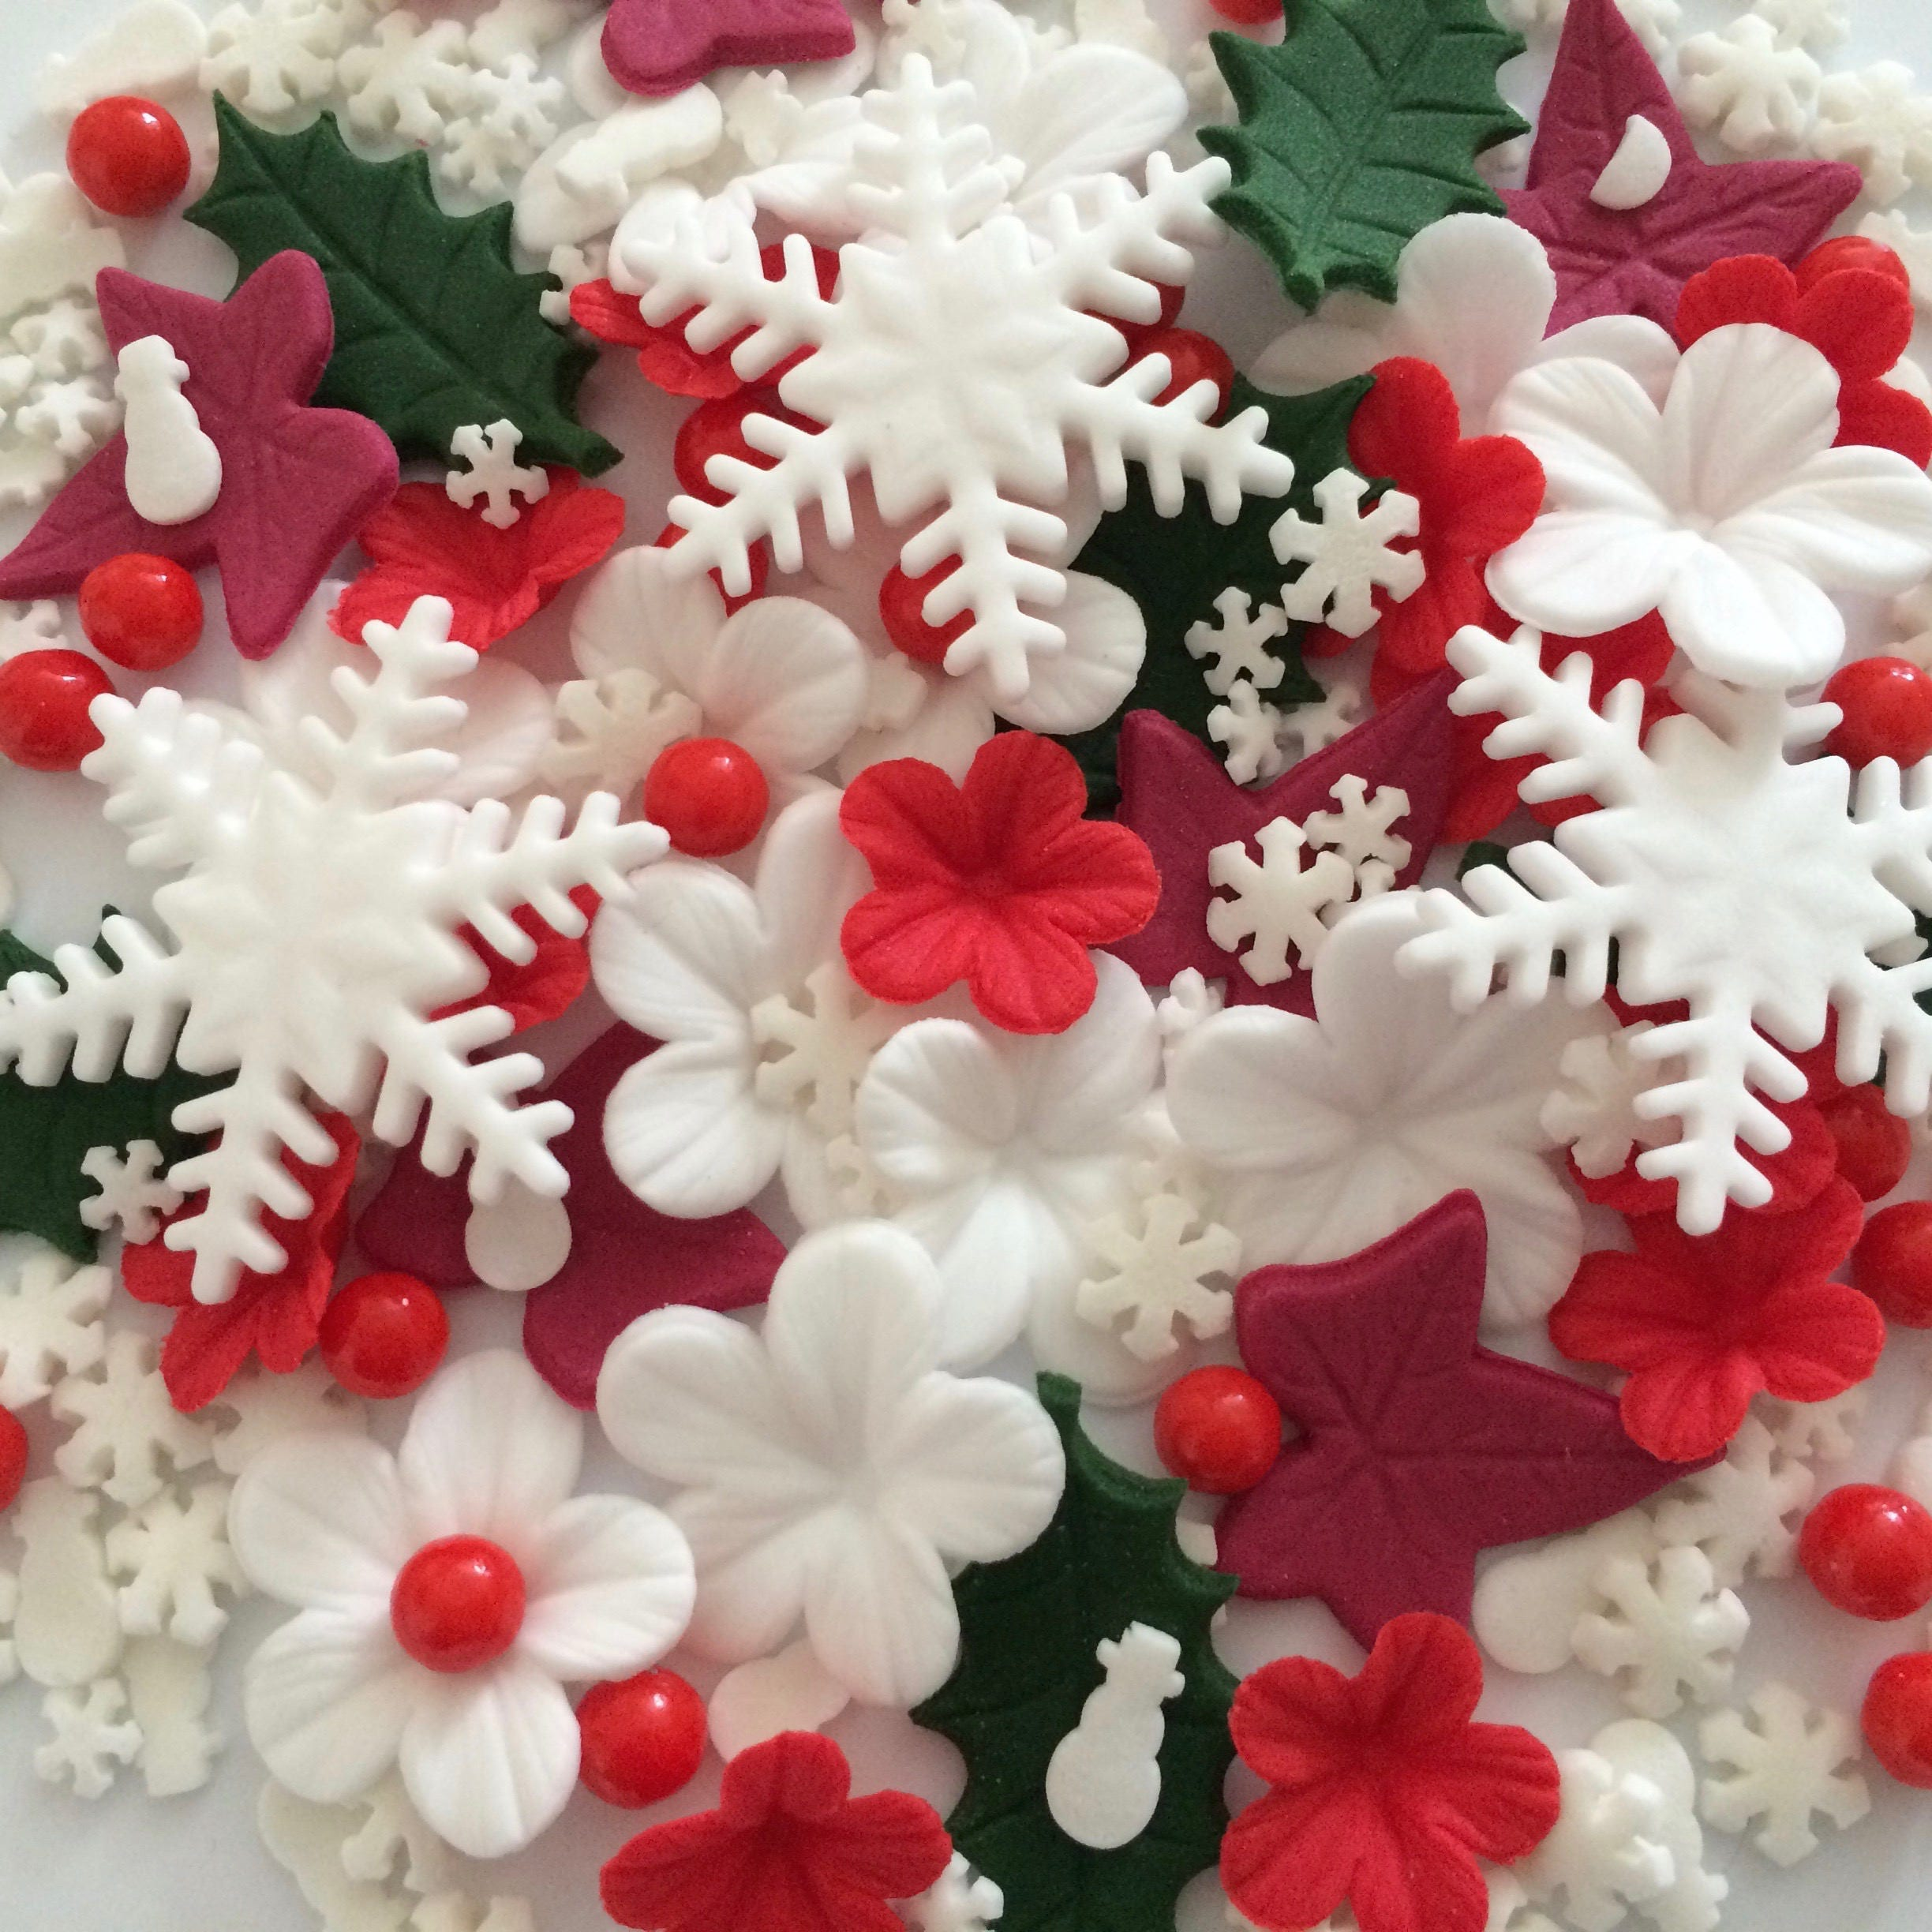 Etsy Christmas Cake Decorations : CHRISTMAS CAKE DECORATIONS edible sugar paste flowers cake ...